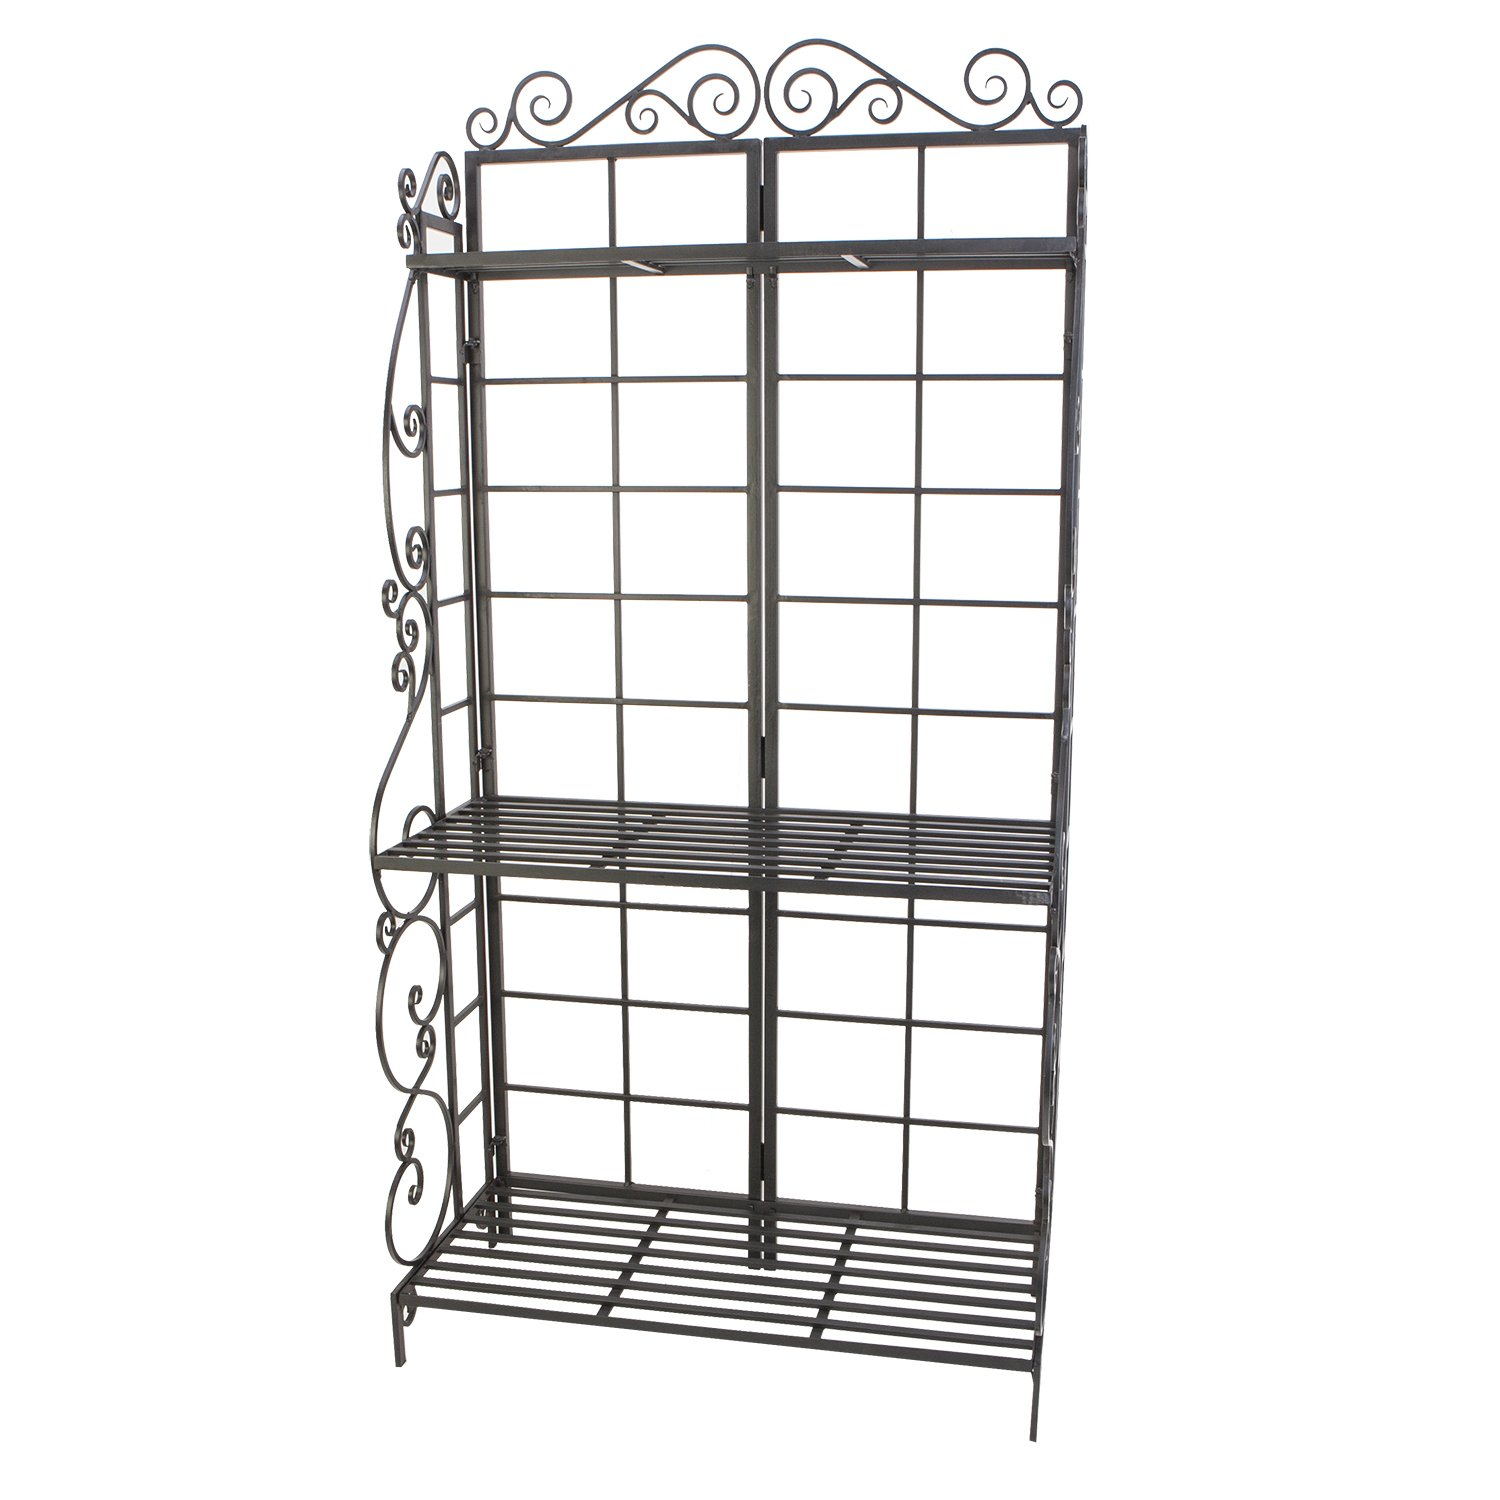 Panacea Products Baker's Rack Plant Stand, Brushed Bronze by Panacea Products